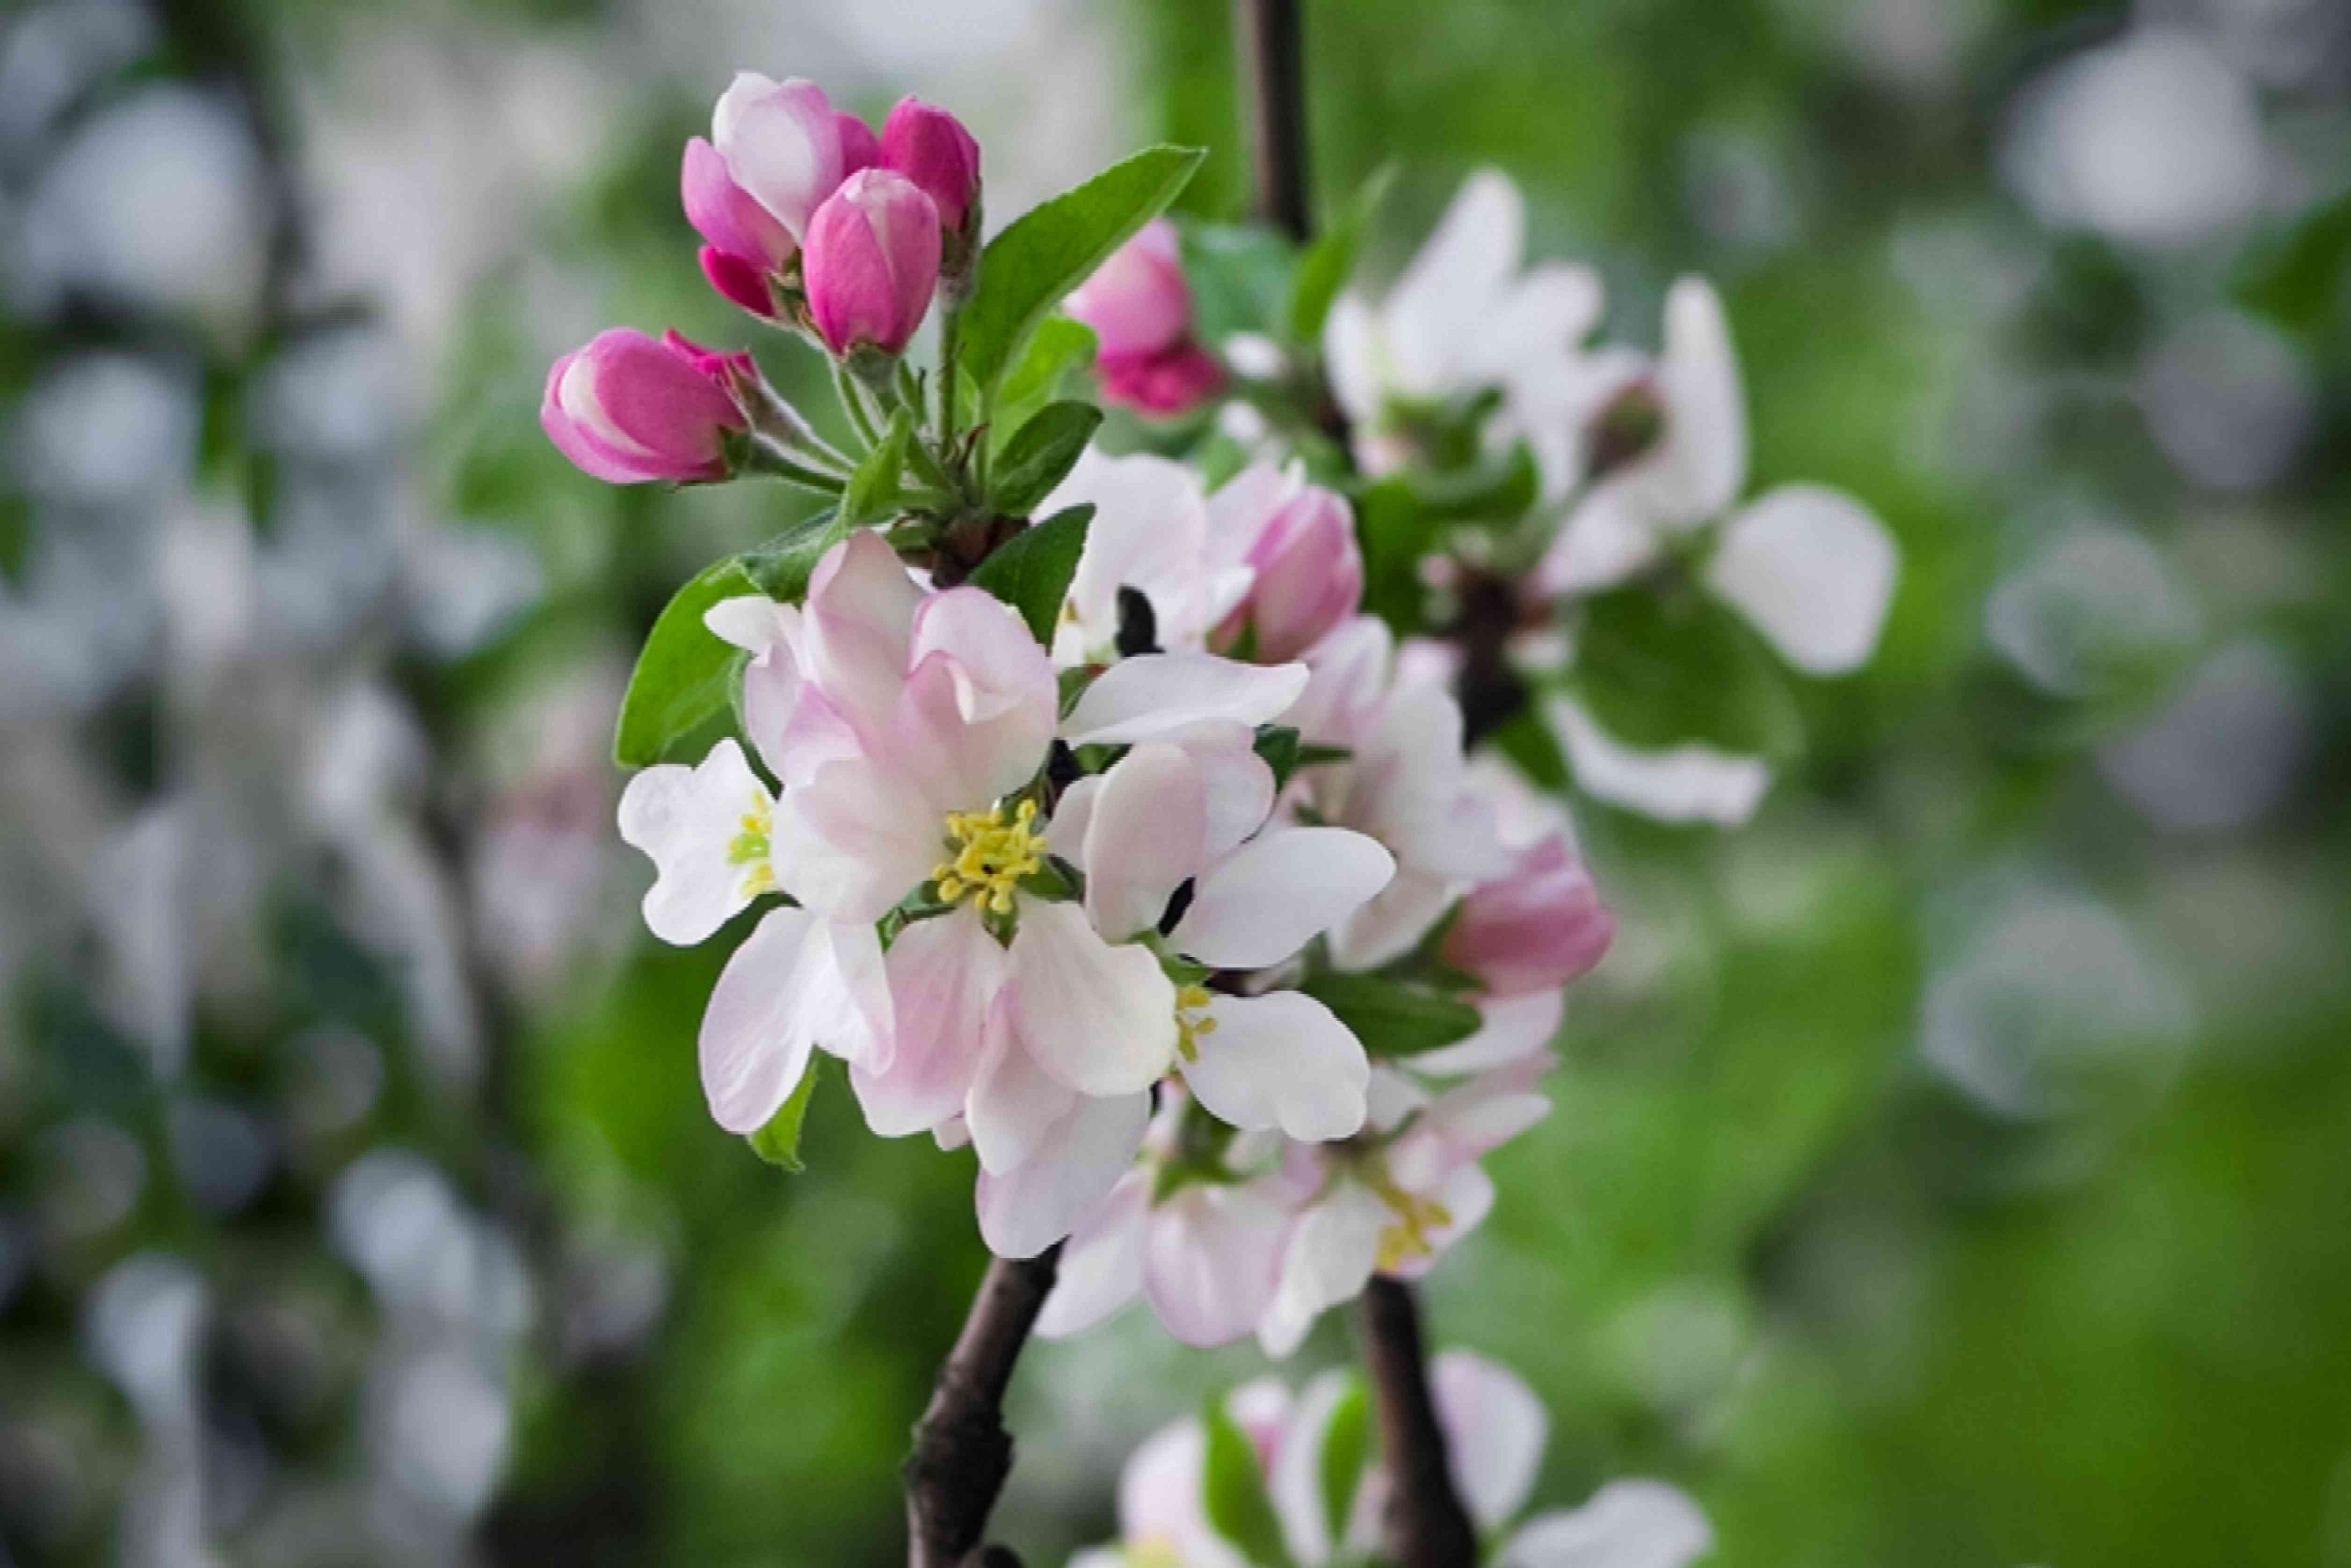 Early harvest apple tree branch with small white flowers and pink buds closeup